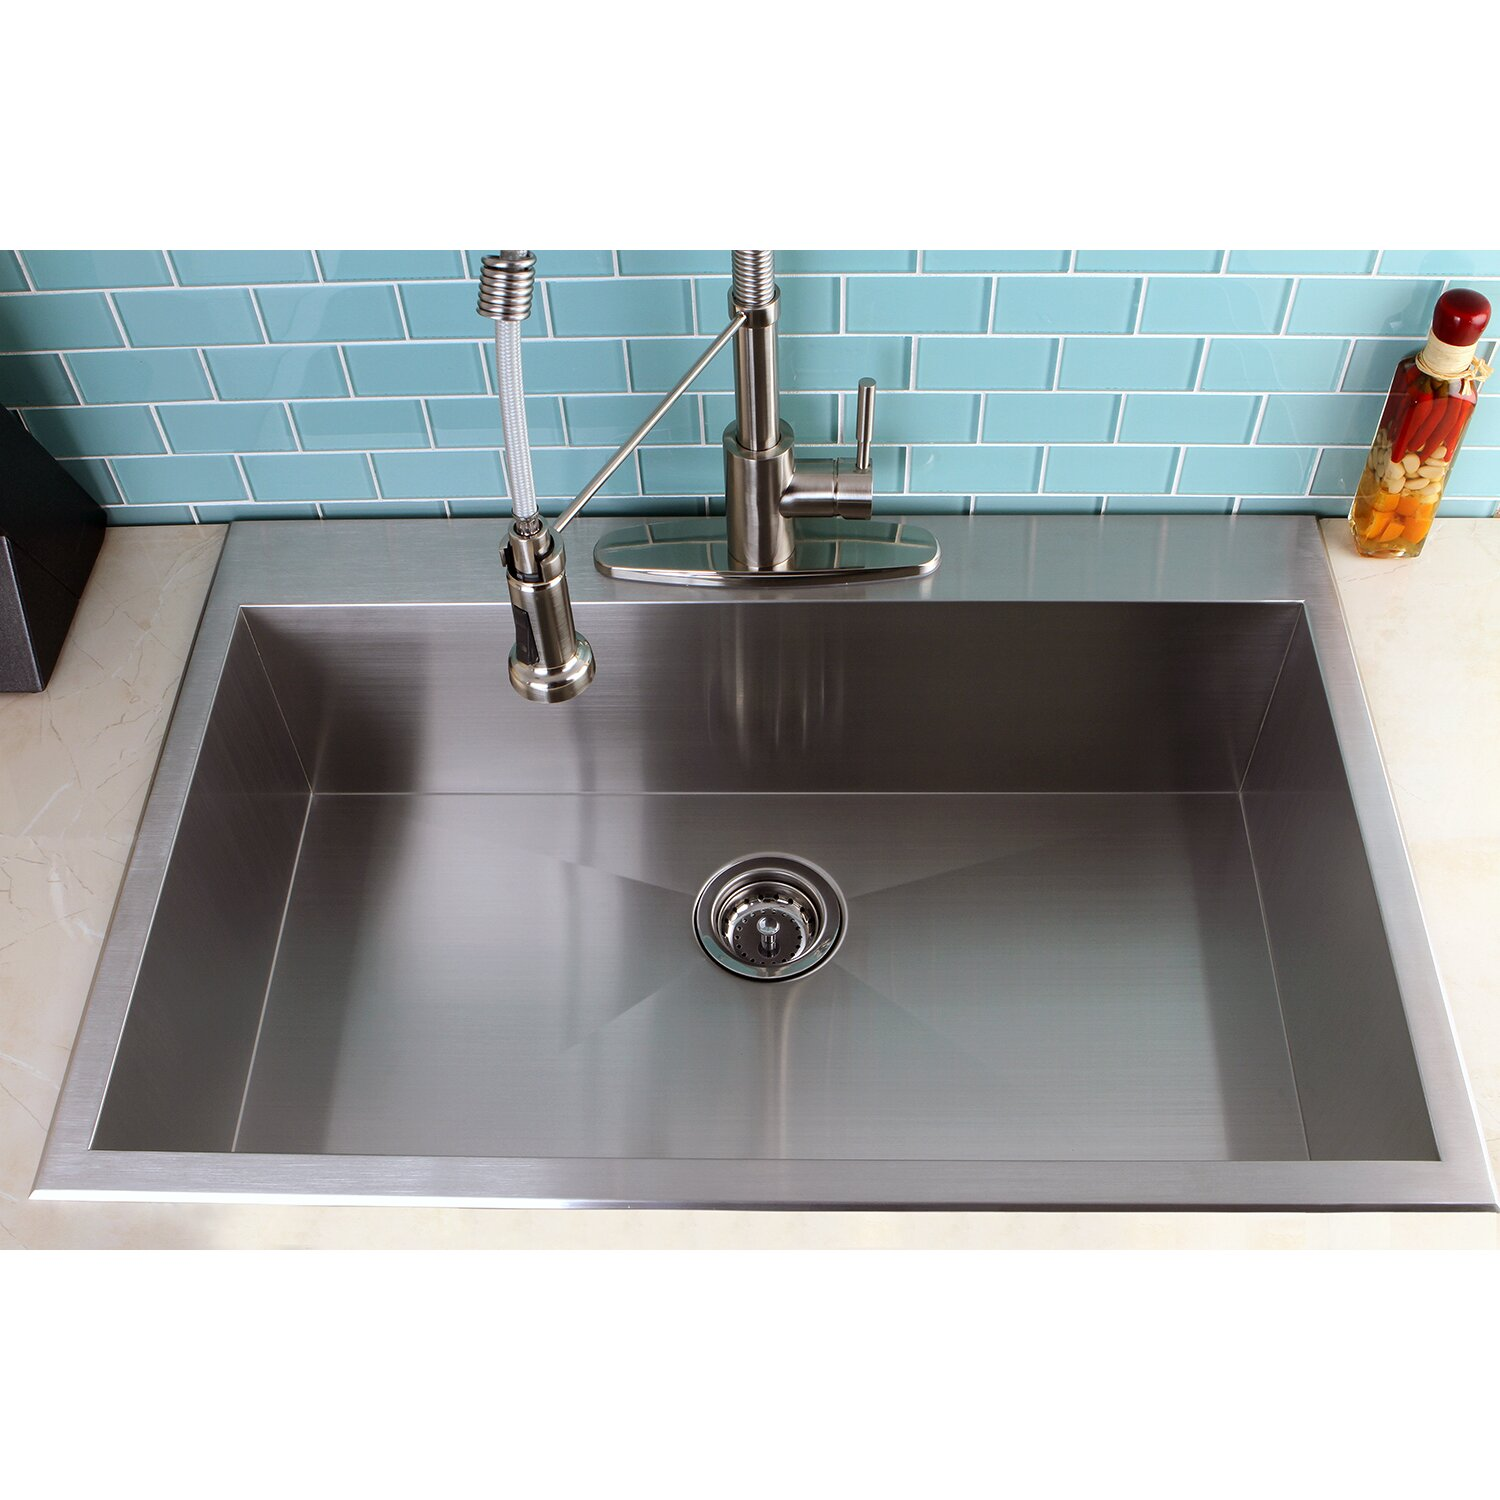 Collection Rok Kitchen Sinks Pictures - Patiofurn Home Design Ideas